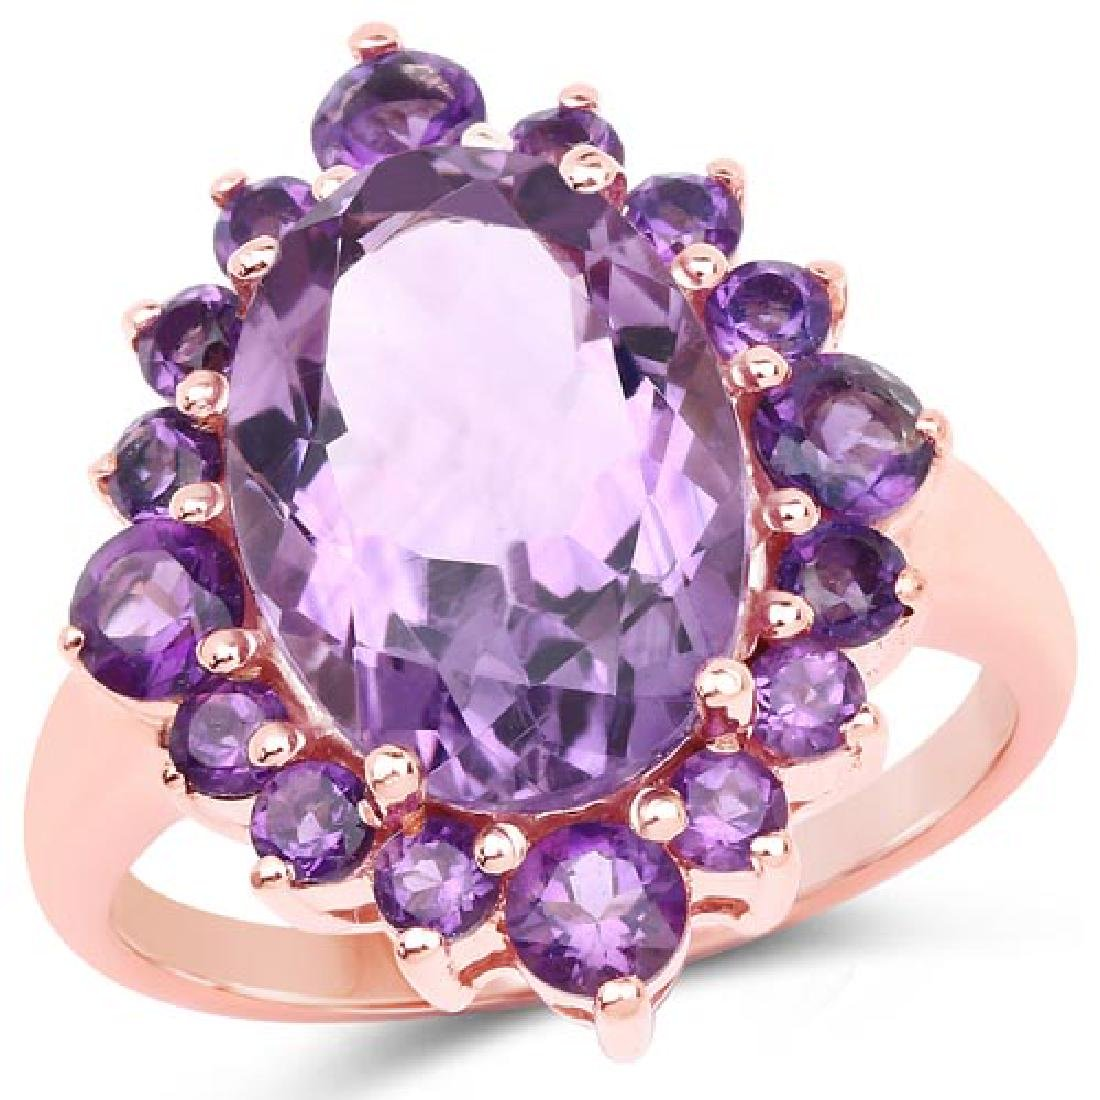 14K Rose Gold Plated 6.22 Carat Genuine Amethyst Brass